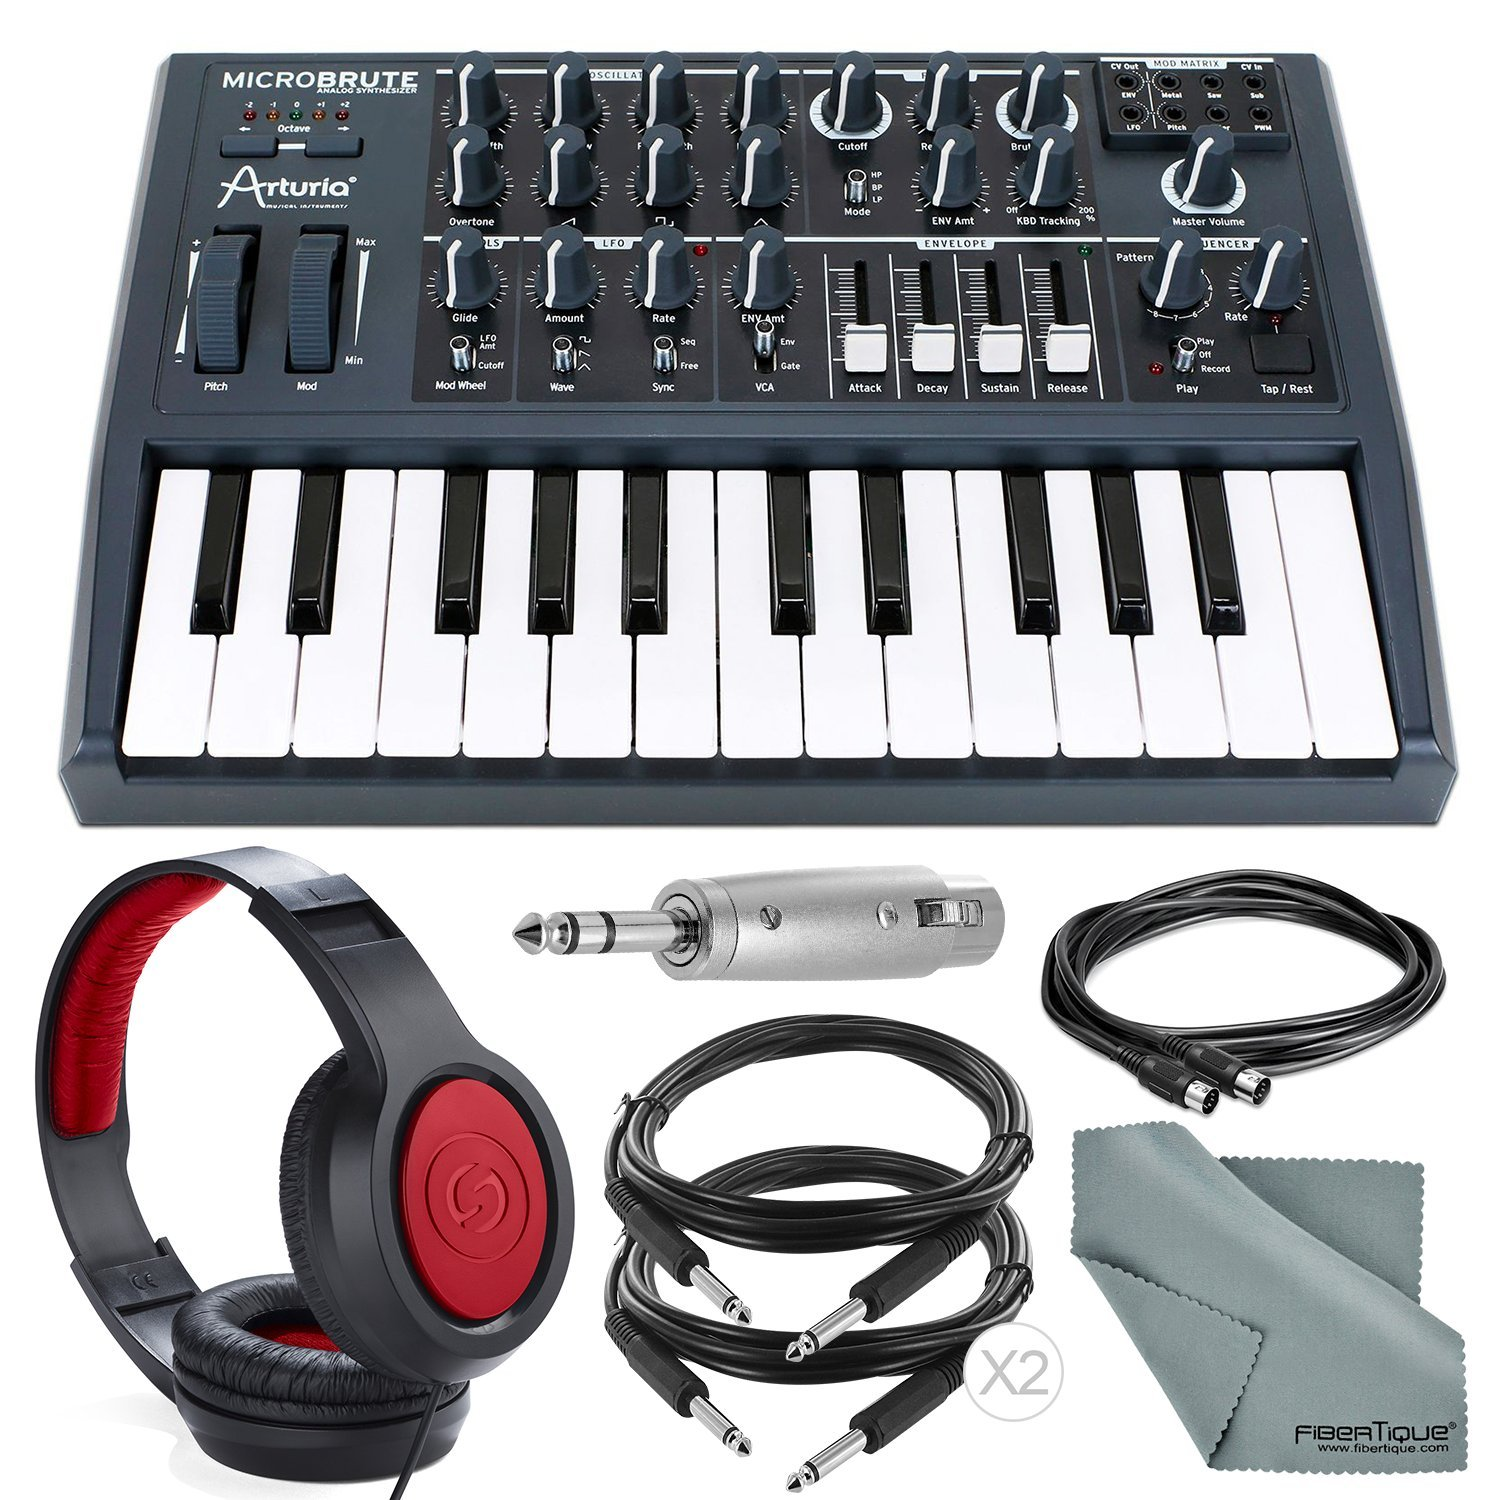 Arturia Microbrute 25-Note Mini Keyboard Analog Synthesizer and Accessory Bundle w/Stereo Headphones + Adapter + Cables